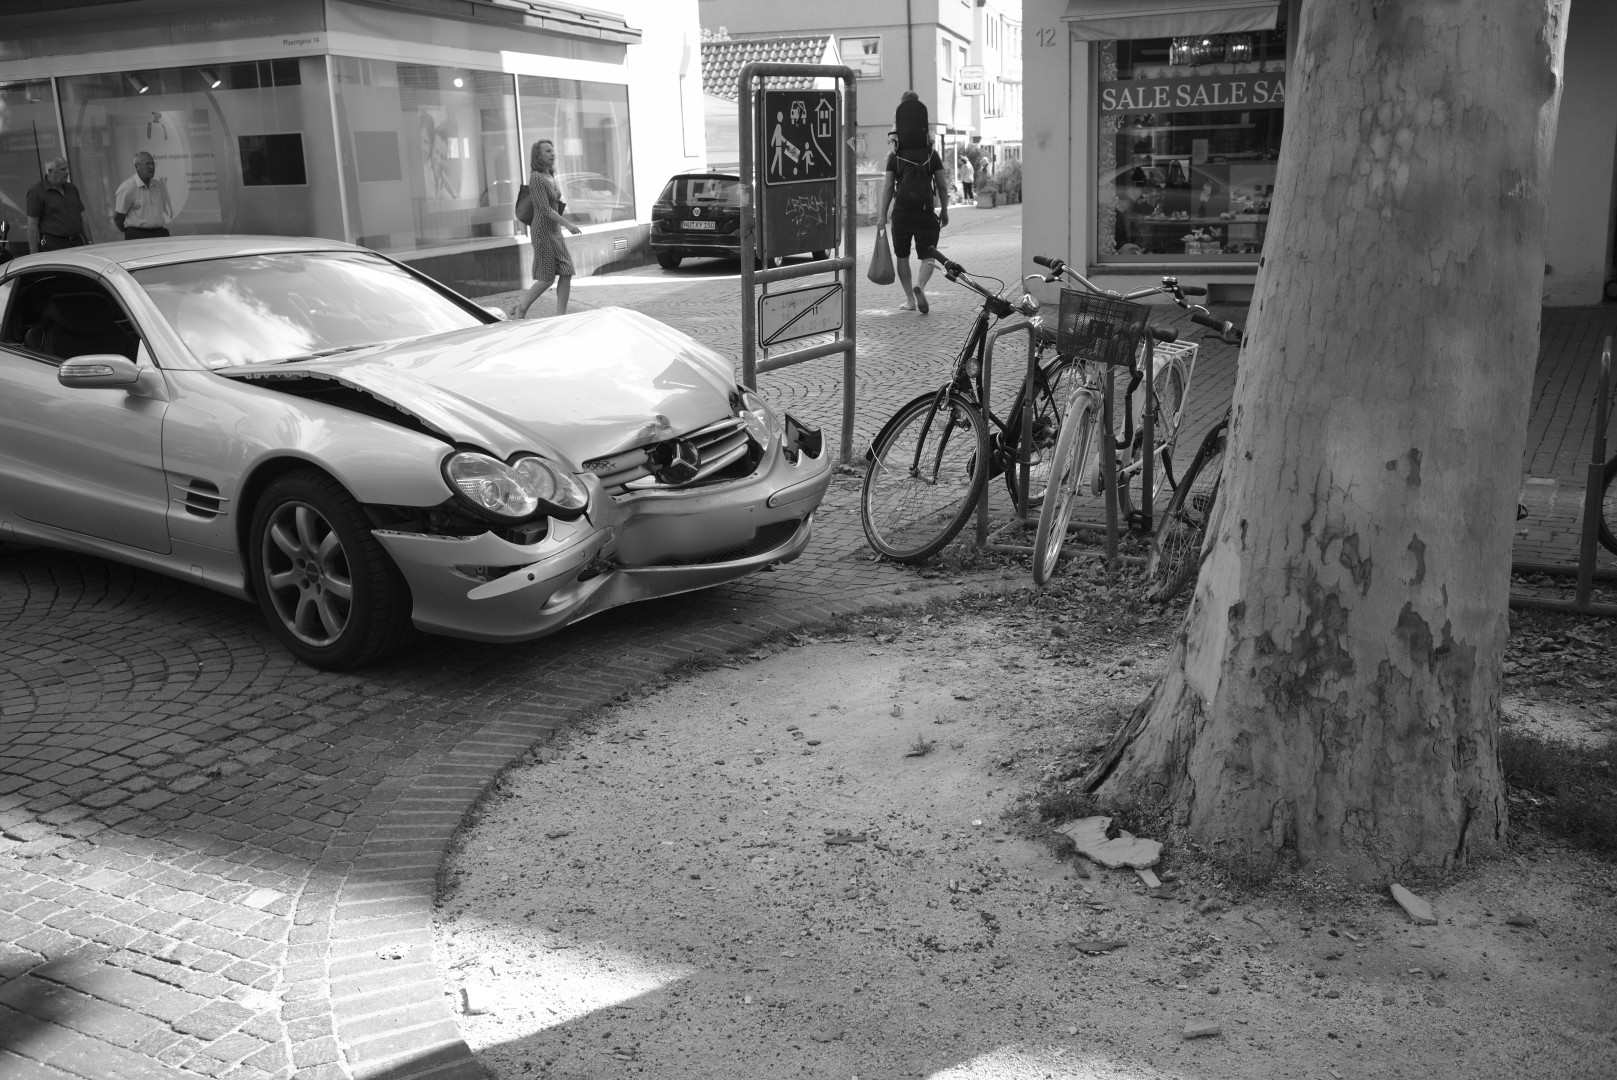 a car that has obviusly bumped into a tree